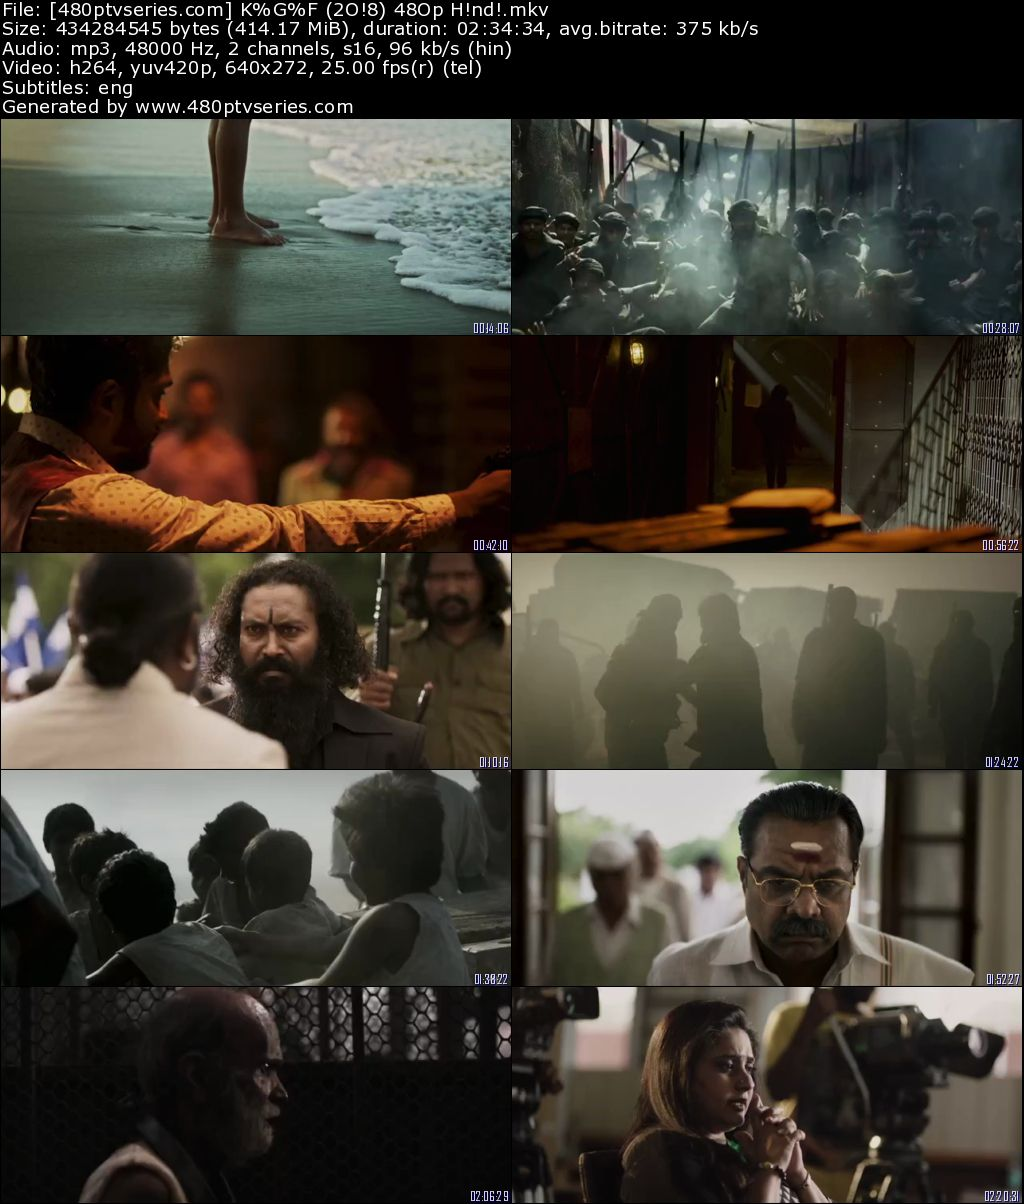 KGF Chapter 1 (2018) Full Hindi Movie Download 480p 720p HDRip Free Watch Online Full Movie Download Worldfree4u 9xmovies